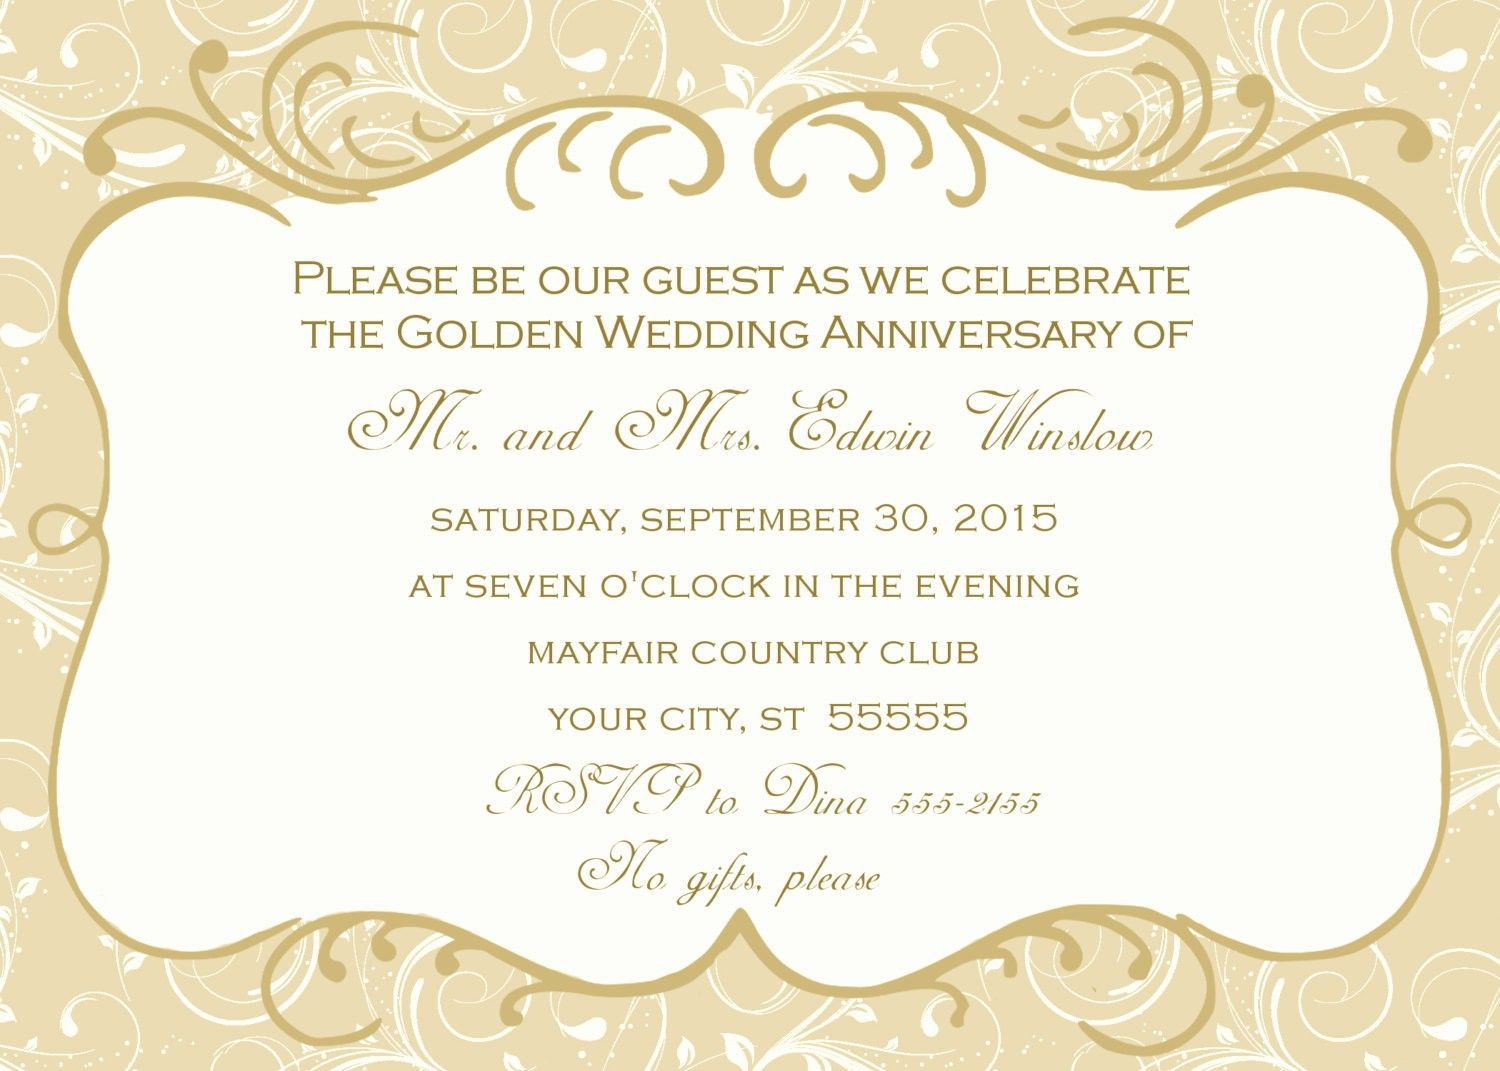 005 Stupendou 50th Wedding Anniversary Invitation Template Highest Quality  Templates Golden Uk Free DownloadFull